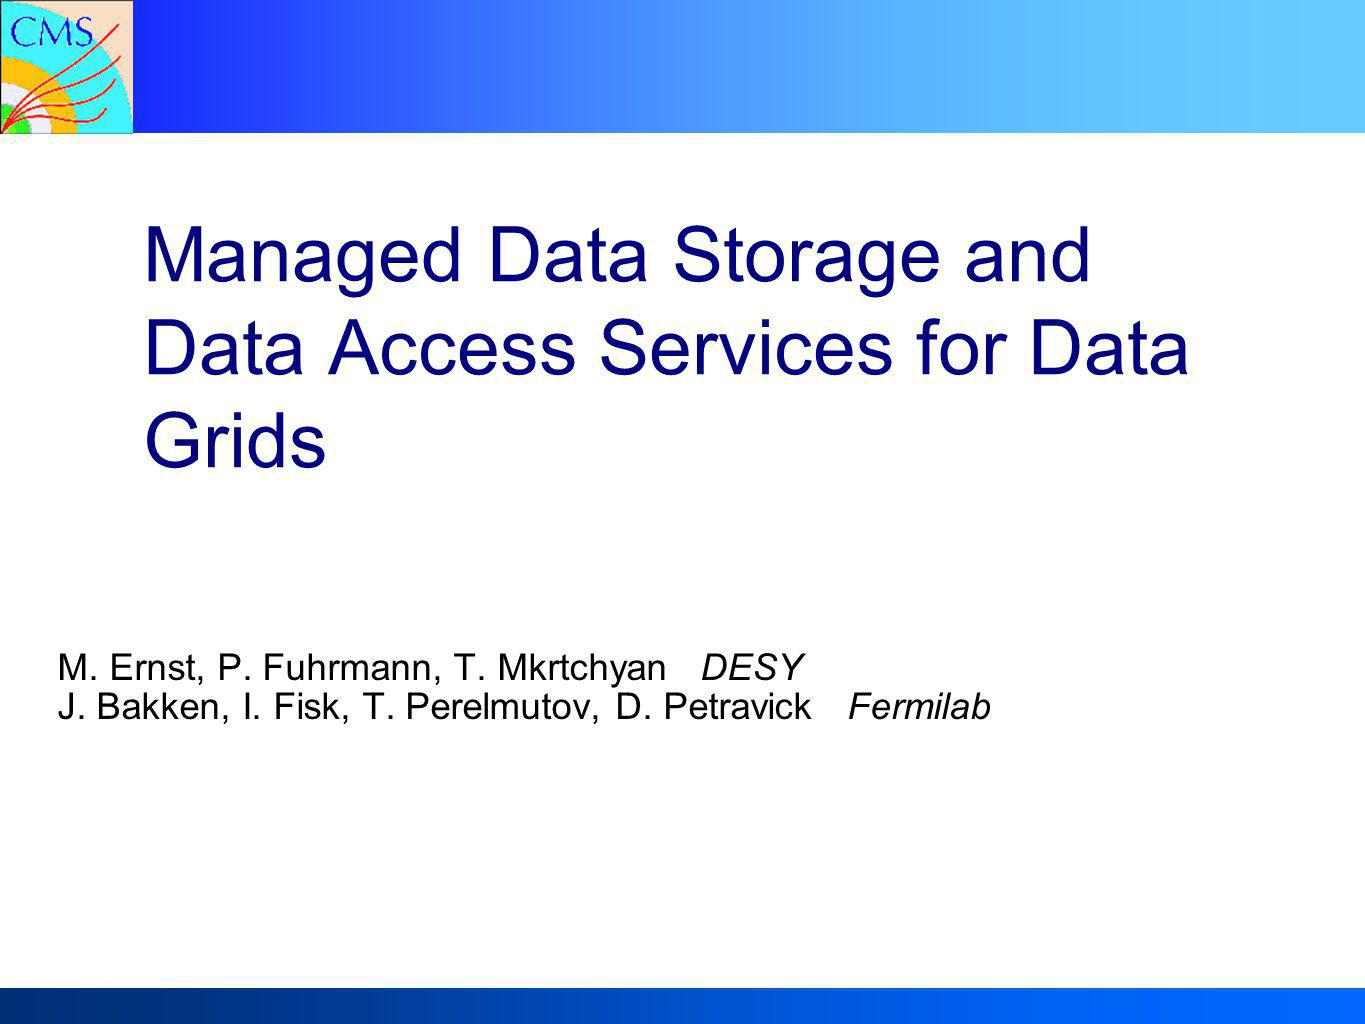 22 Michael Ernst DESYManaged Data Storage - CHEP2004September 27, 2004 Daily data transferred to FNAL